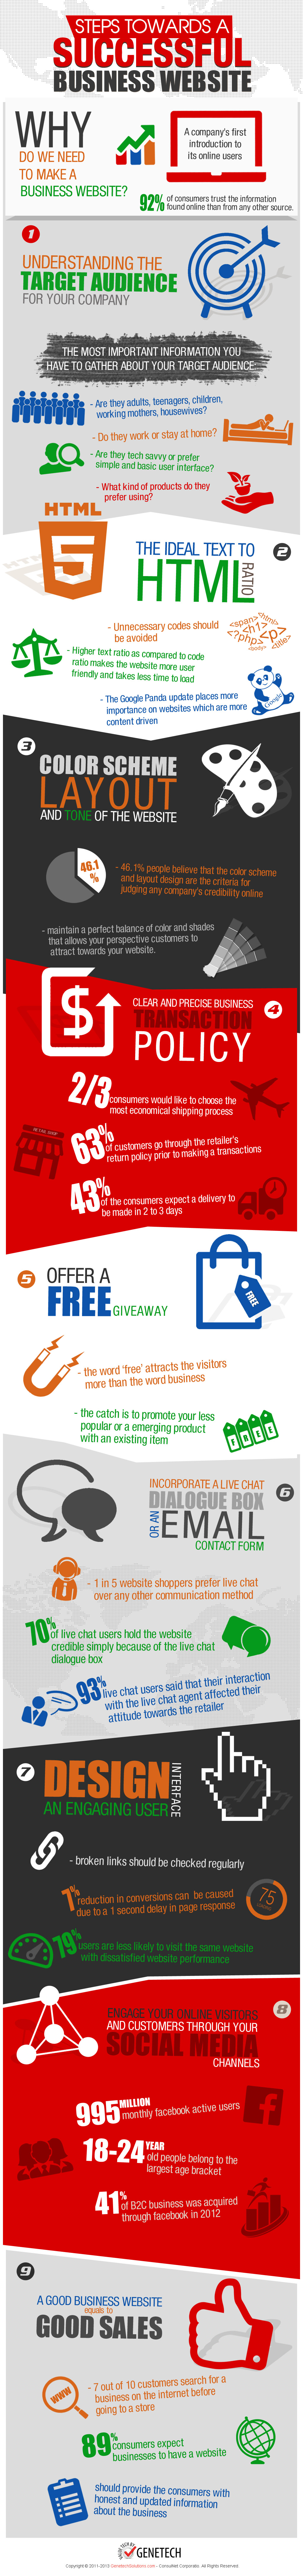 How To Build A Successful Business Website Infographic Create Business Website Business Website Business Infographic